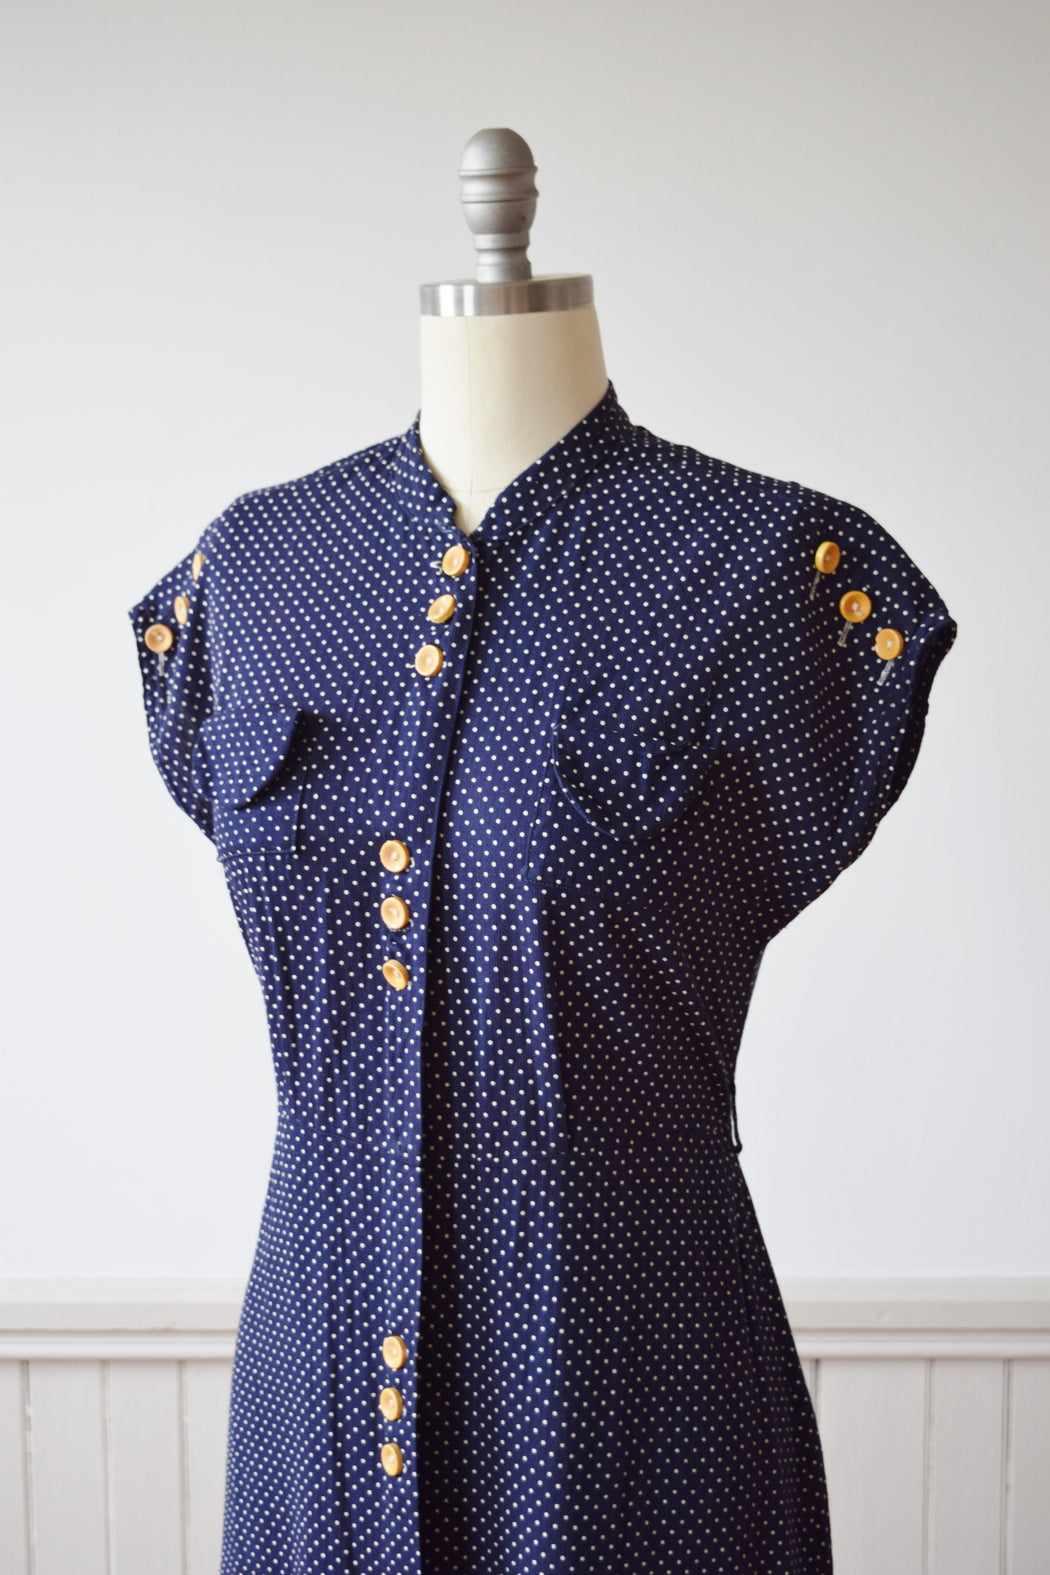 Dotted Day Dress with Bakelite Buttons | 1930s | M